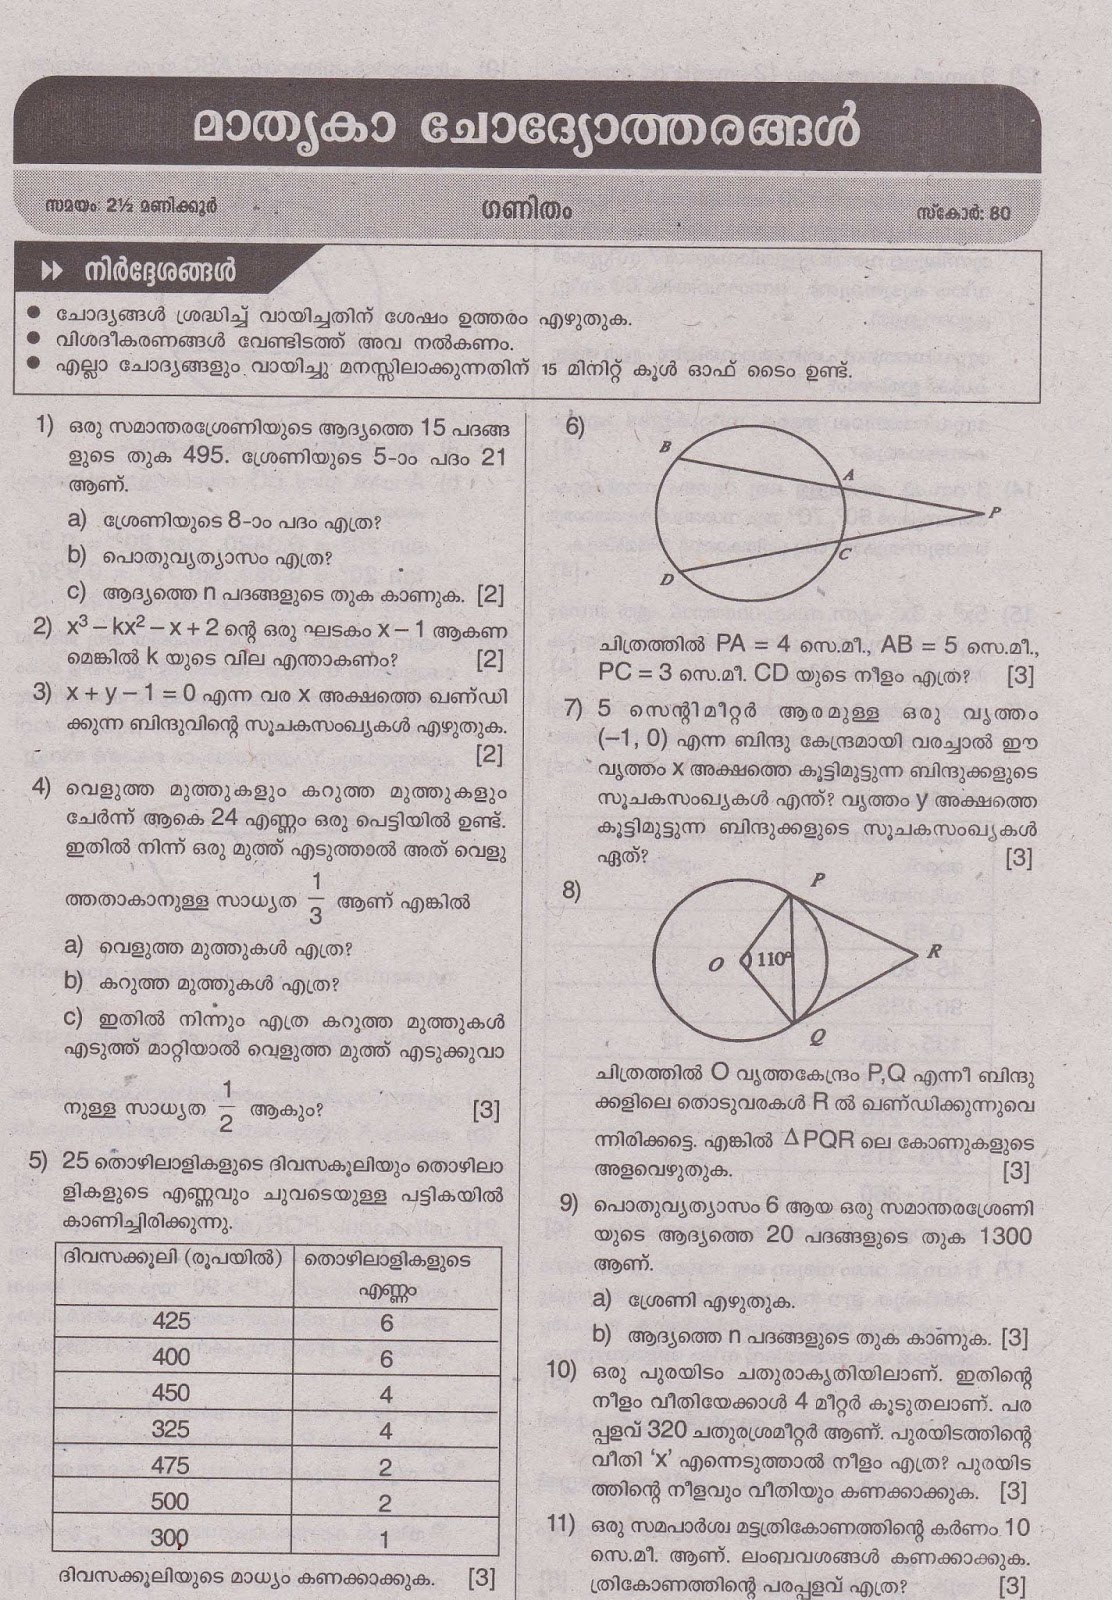 Sslc question paper sslc question paper mathematics sslc question paper maths malvernweather